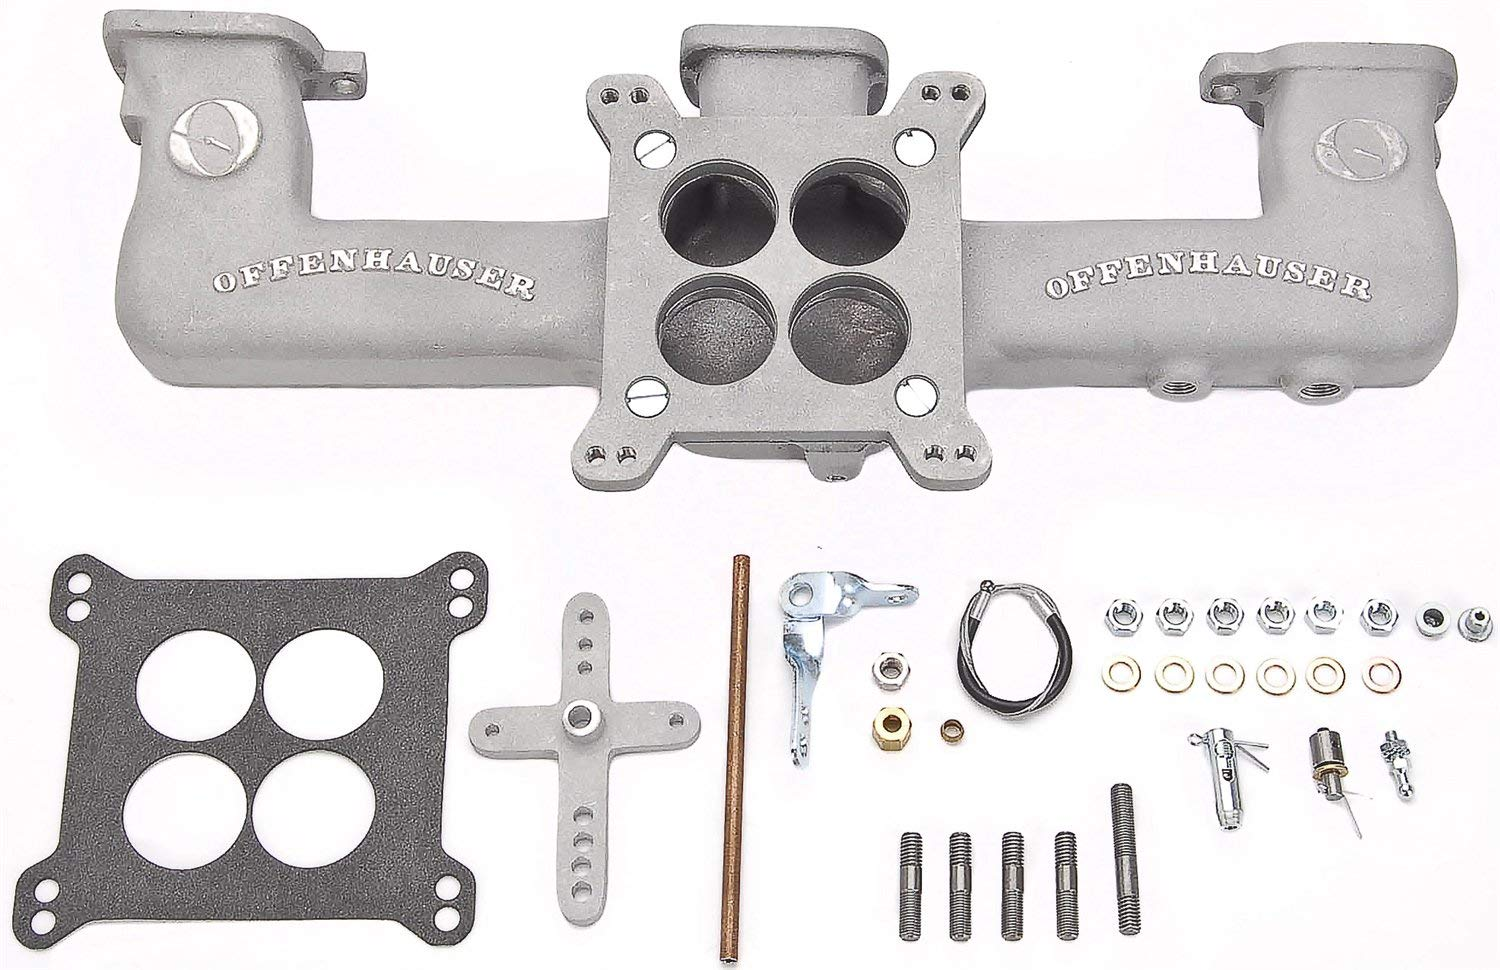 Offenhauser 5416 Quad Carb Intake Manifold Kit 1962-Up Chevy 194/230/250/292